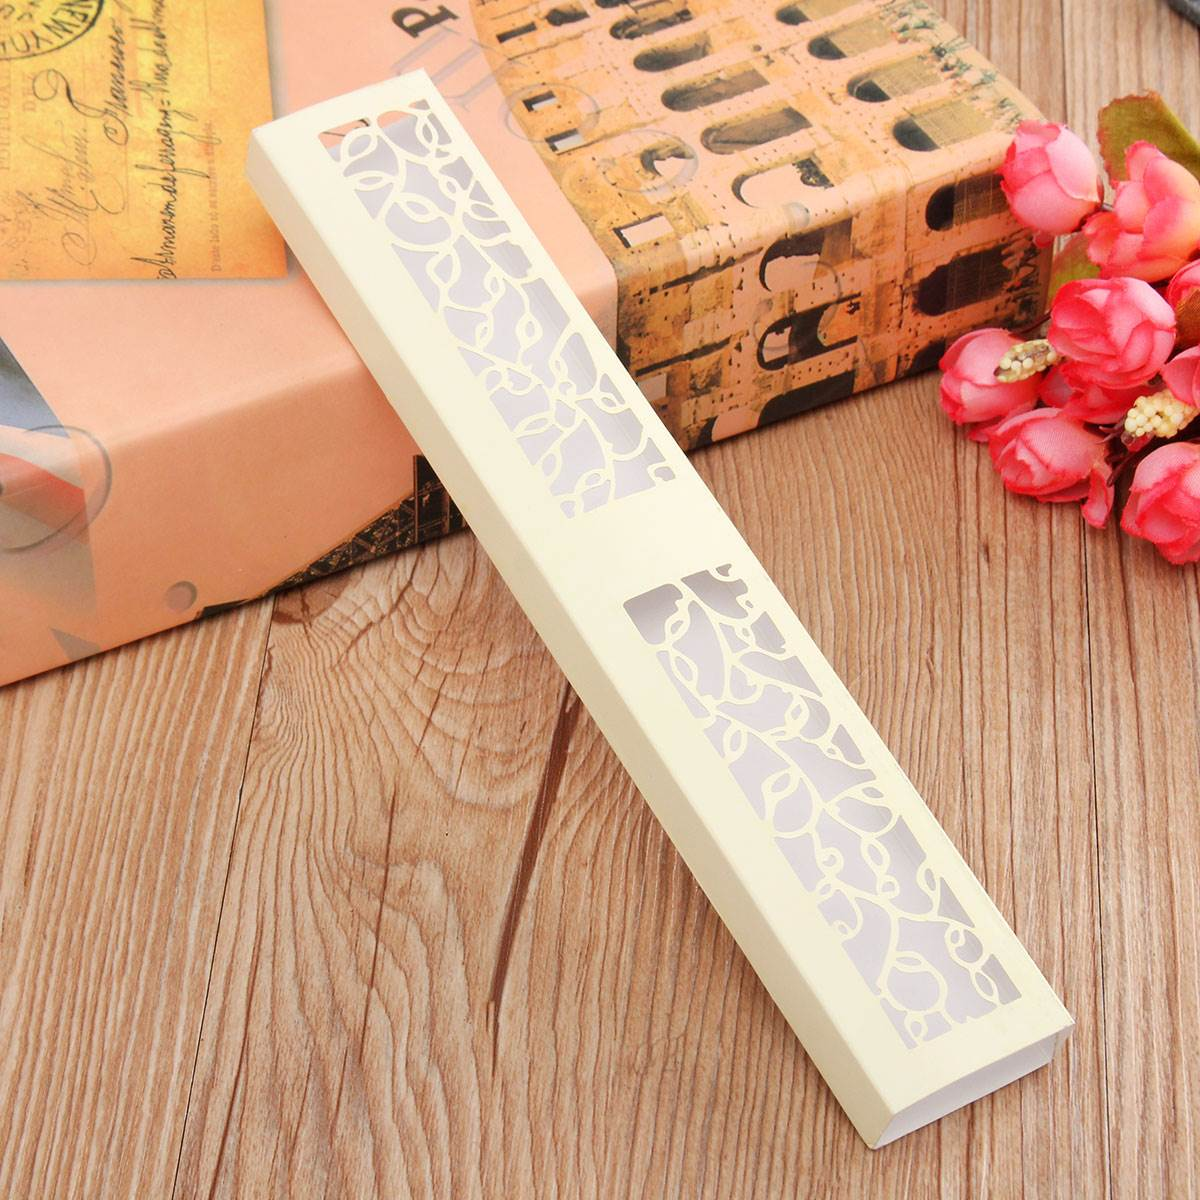 Lovely Engagement Anniversary Wedding Party Cake Favour Favor Gift Boxes Wedding Fans Organizer Storage(China (Mainland))